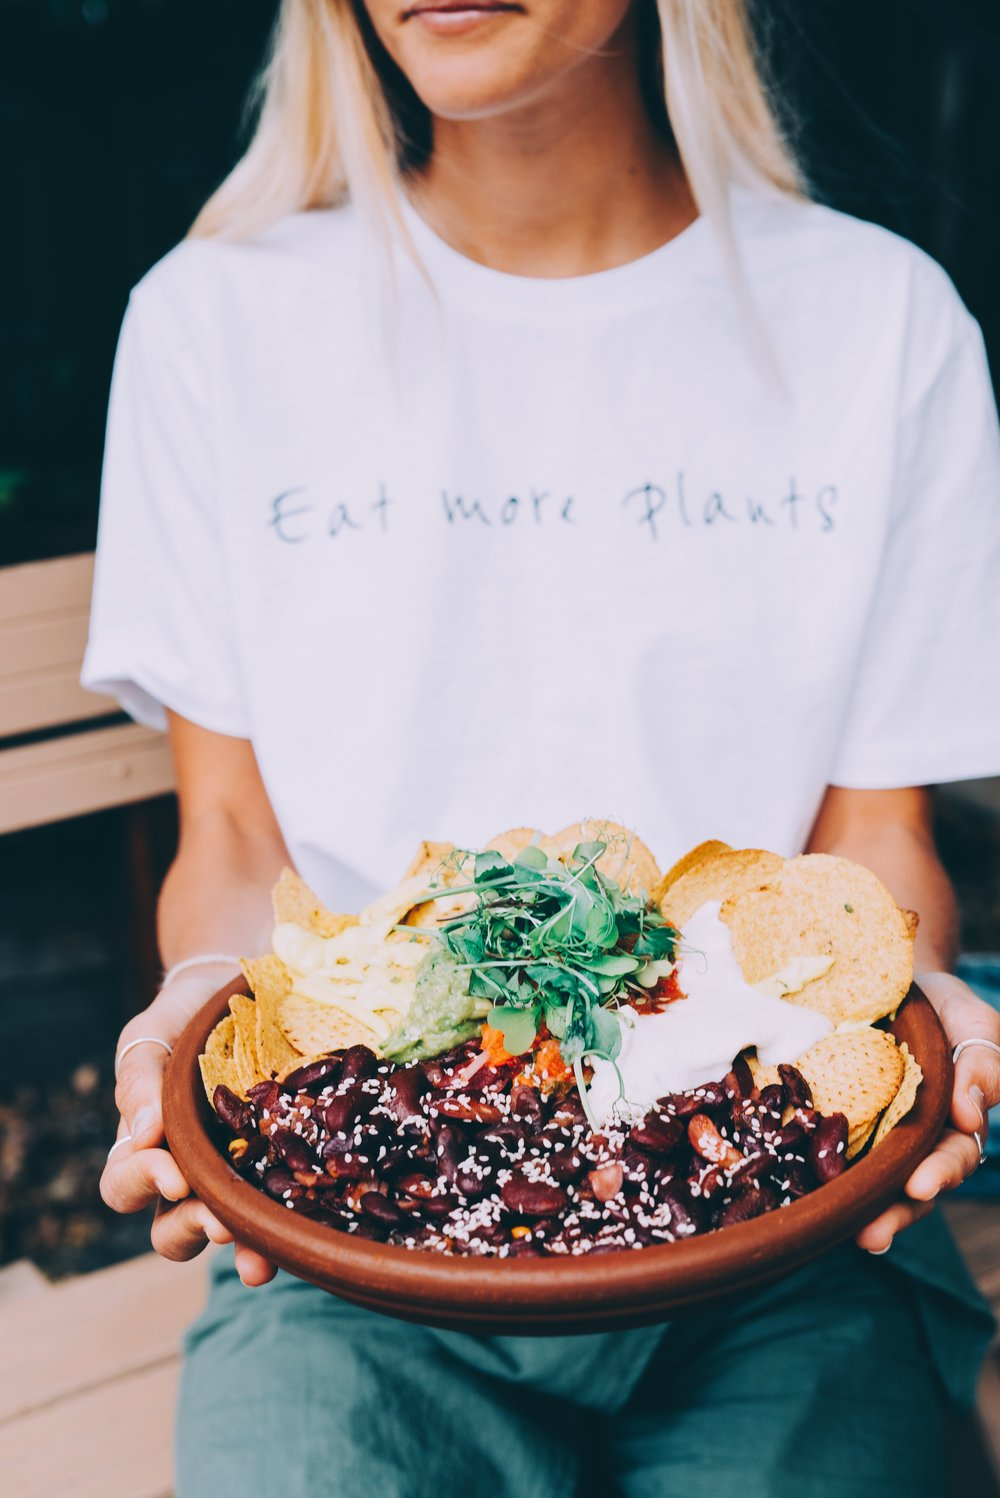 Eat more plants tee, I am wearing size XS. CLICK HERE TO PURCHASE